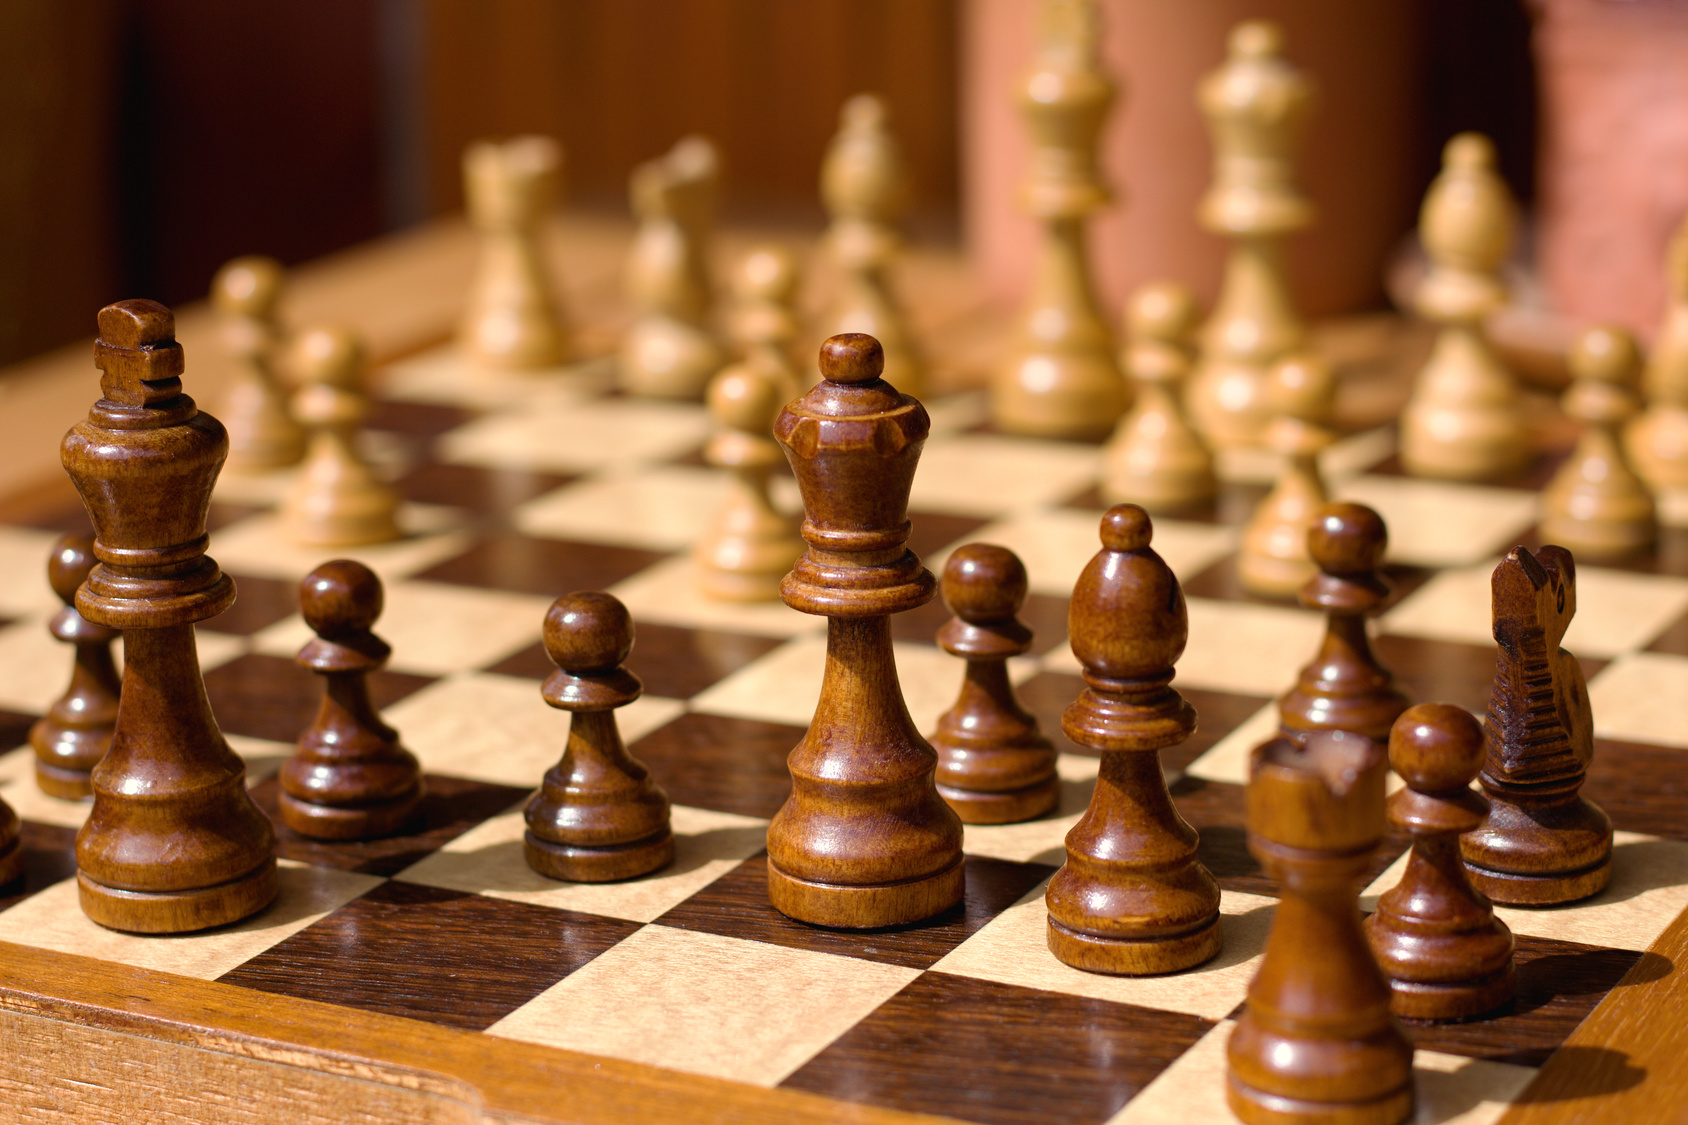 SAGE Chess: A Game of the Ages